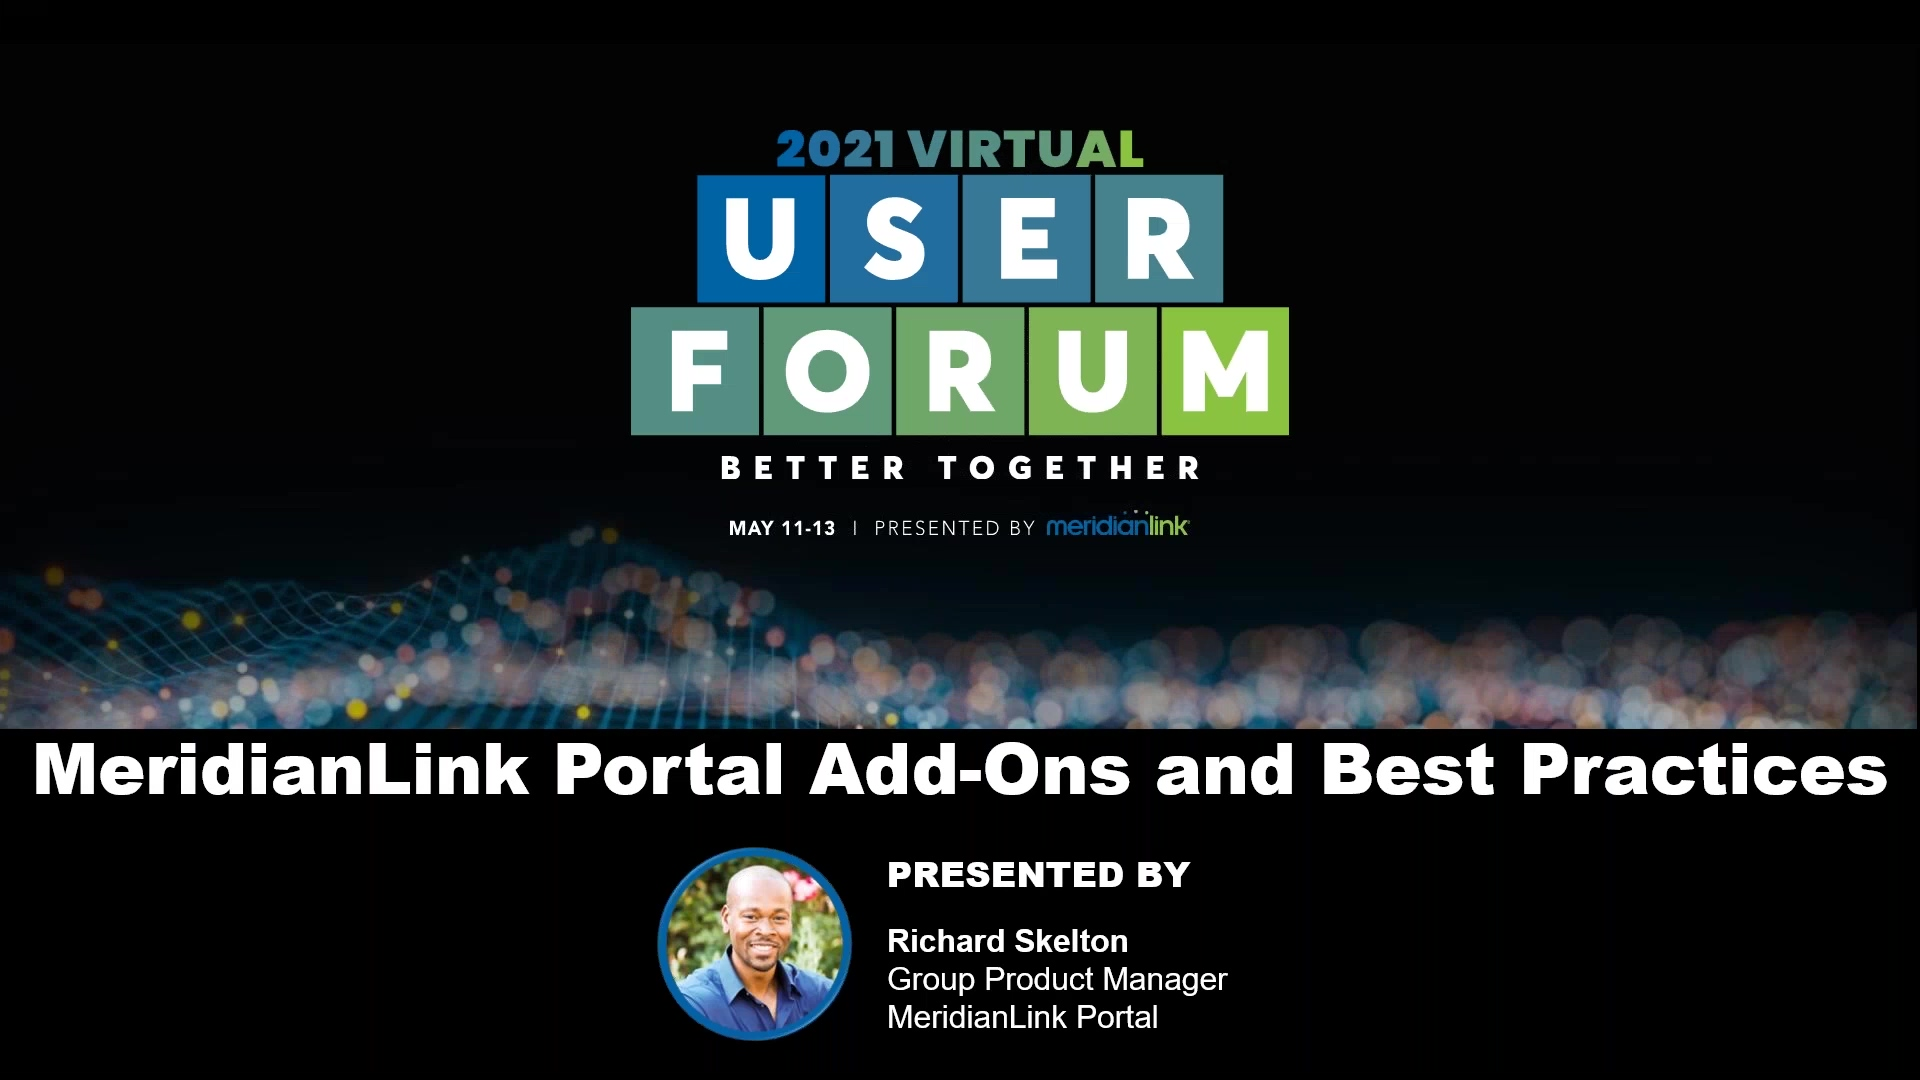 MeridianLink Portal Add-ons and Best Practices 2